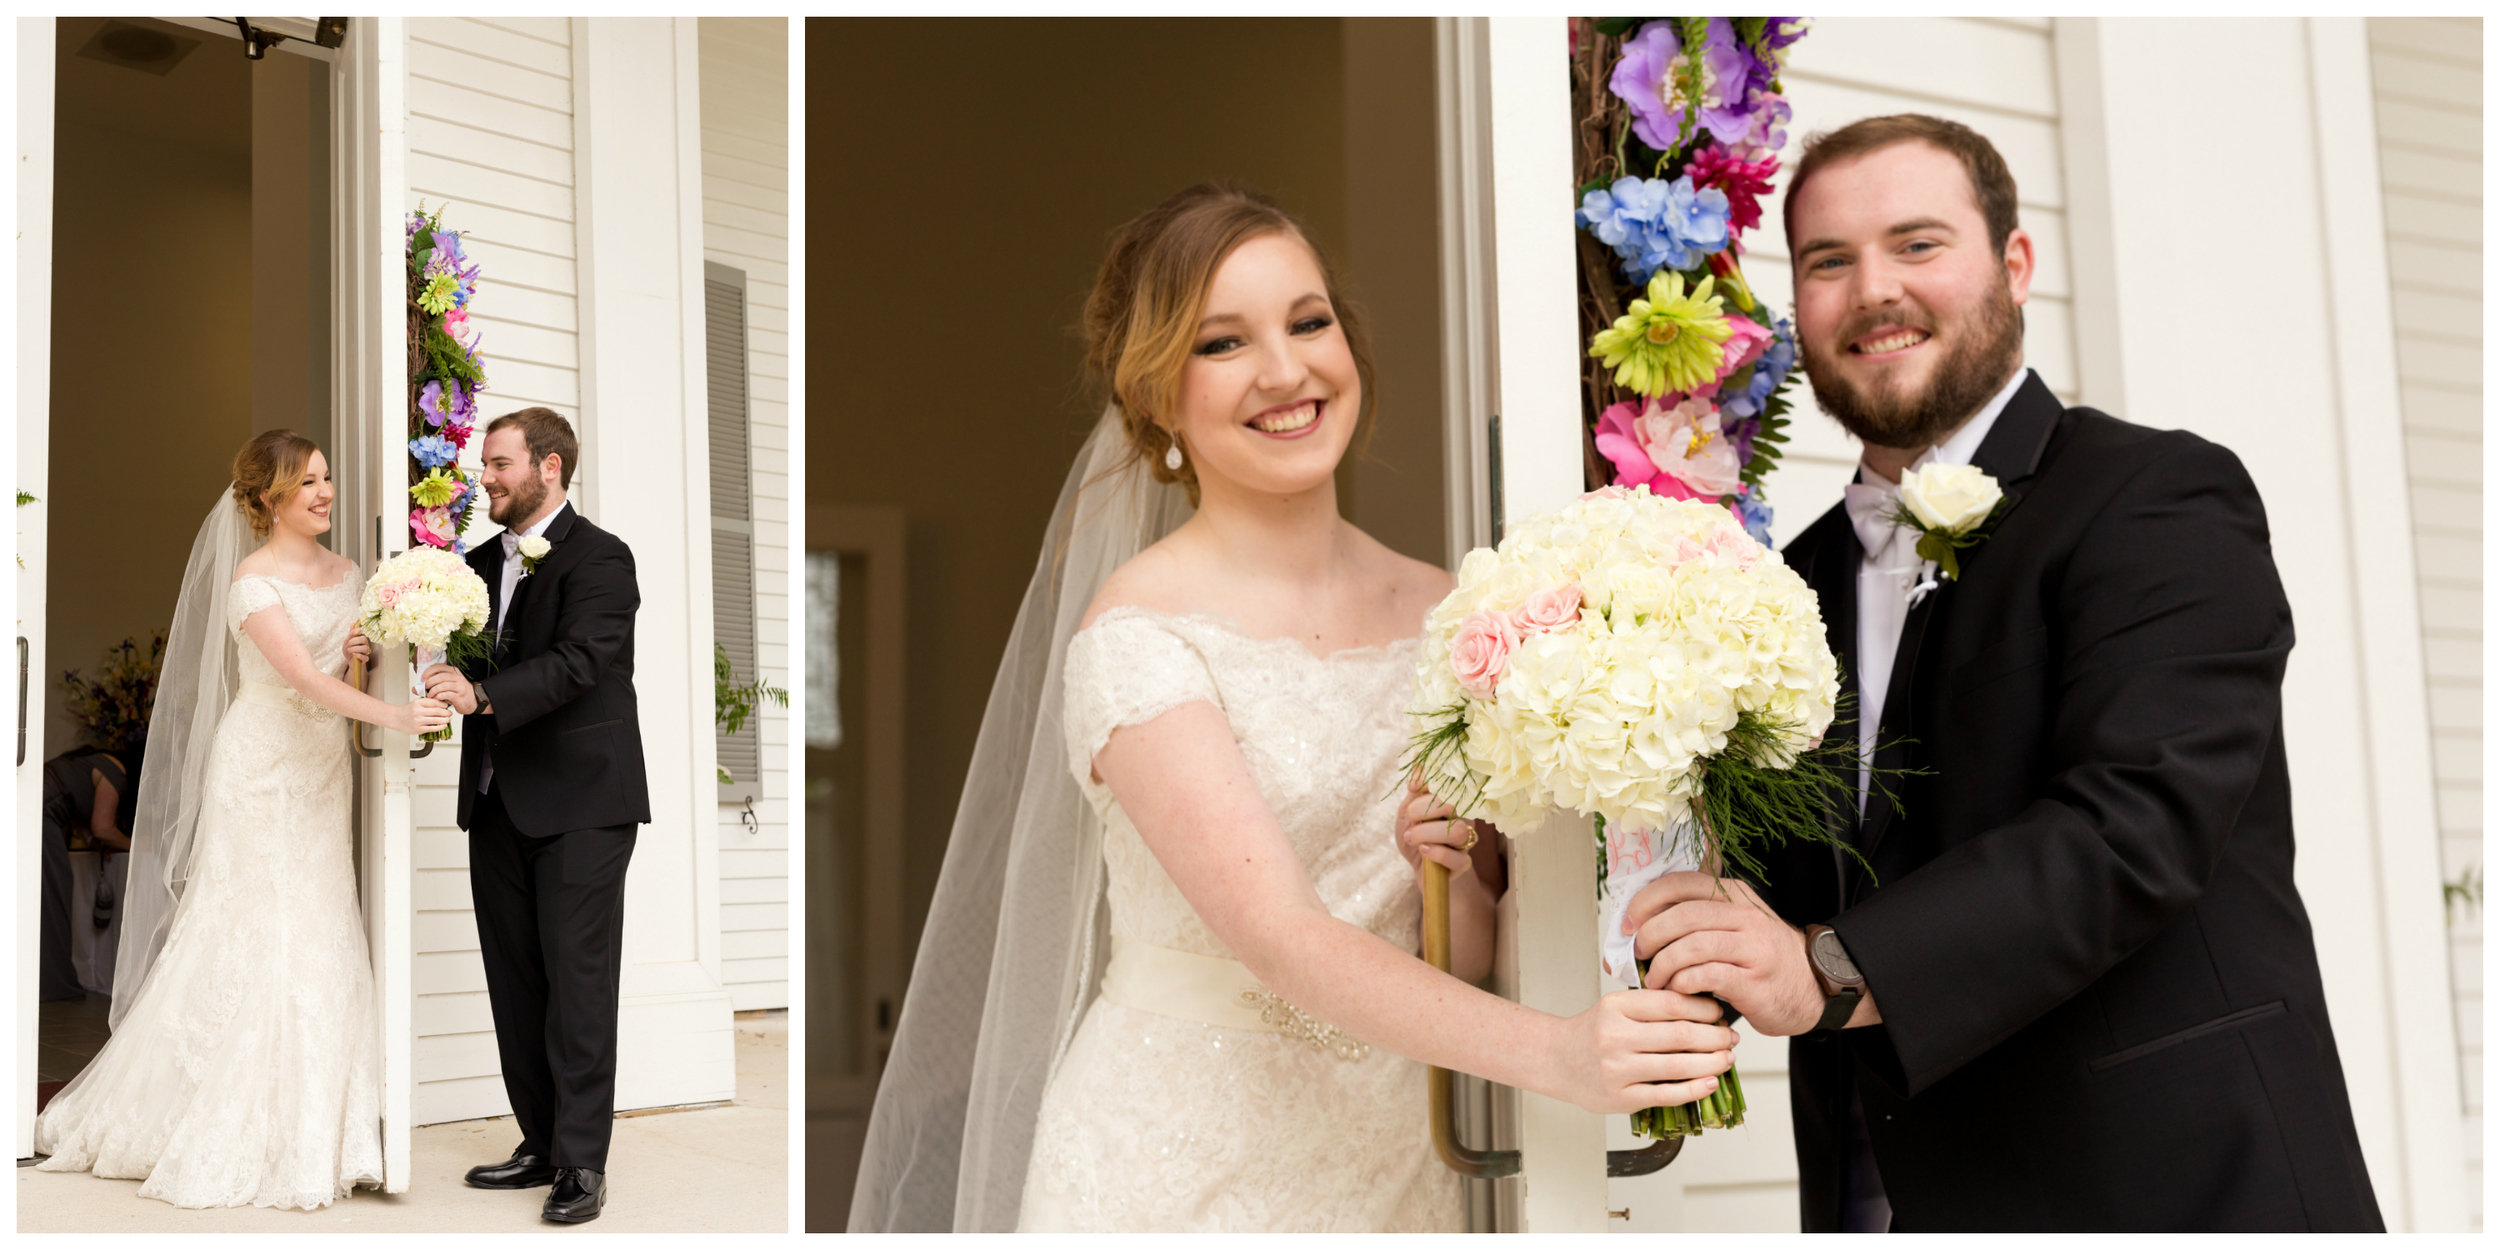 groom giving bride bouquet before wedding ceremony (Southern wedding tradition)